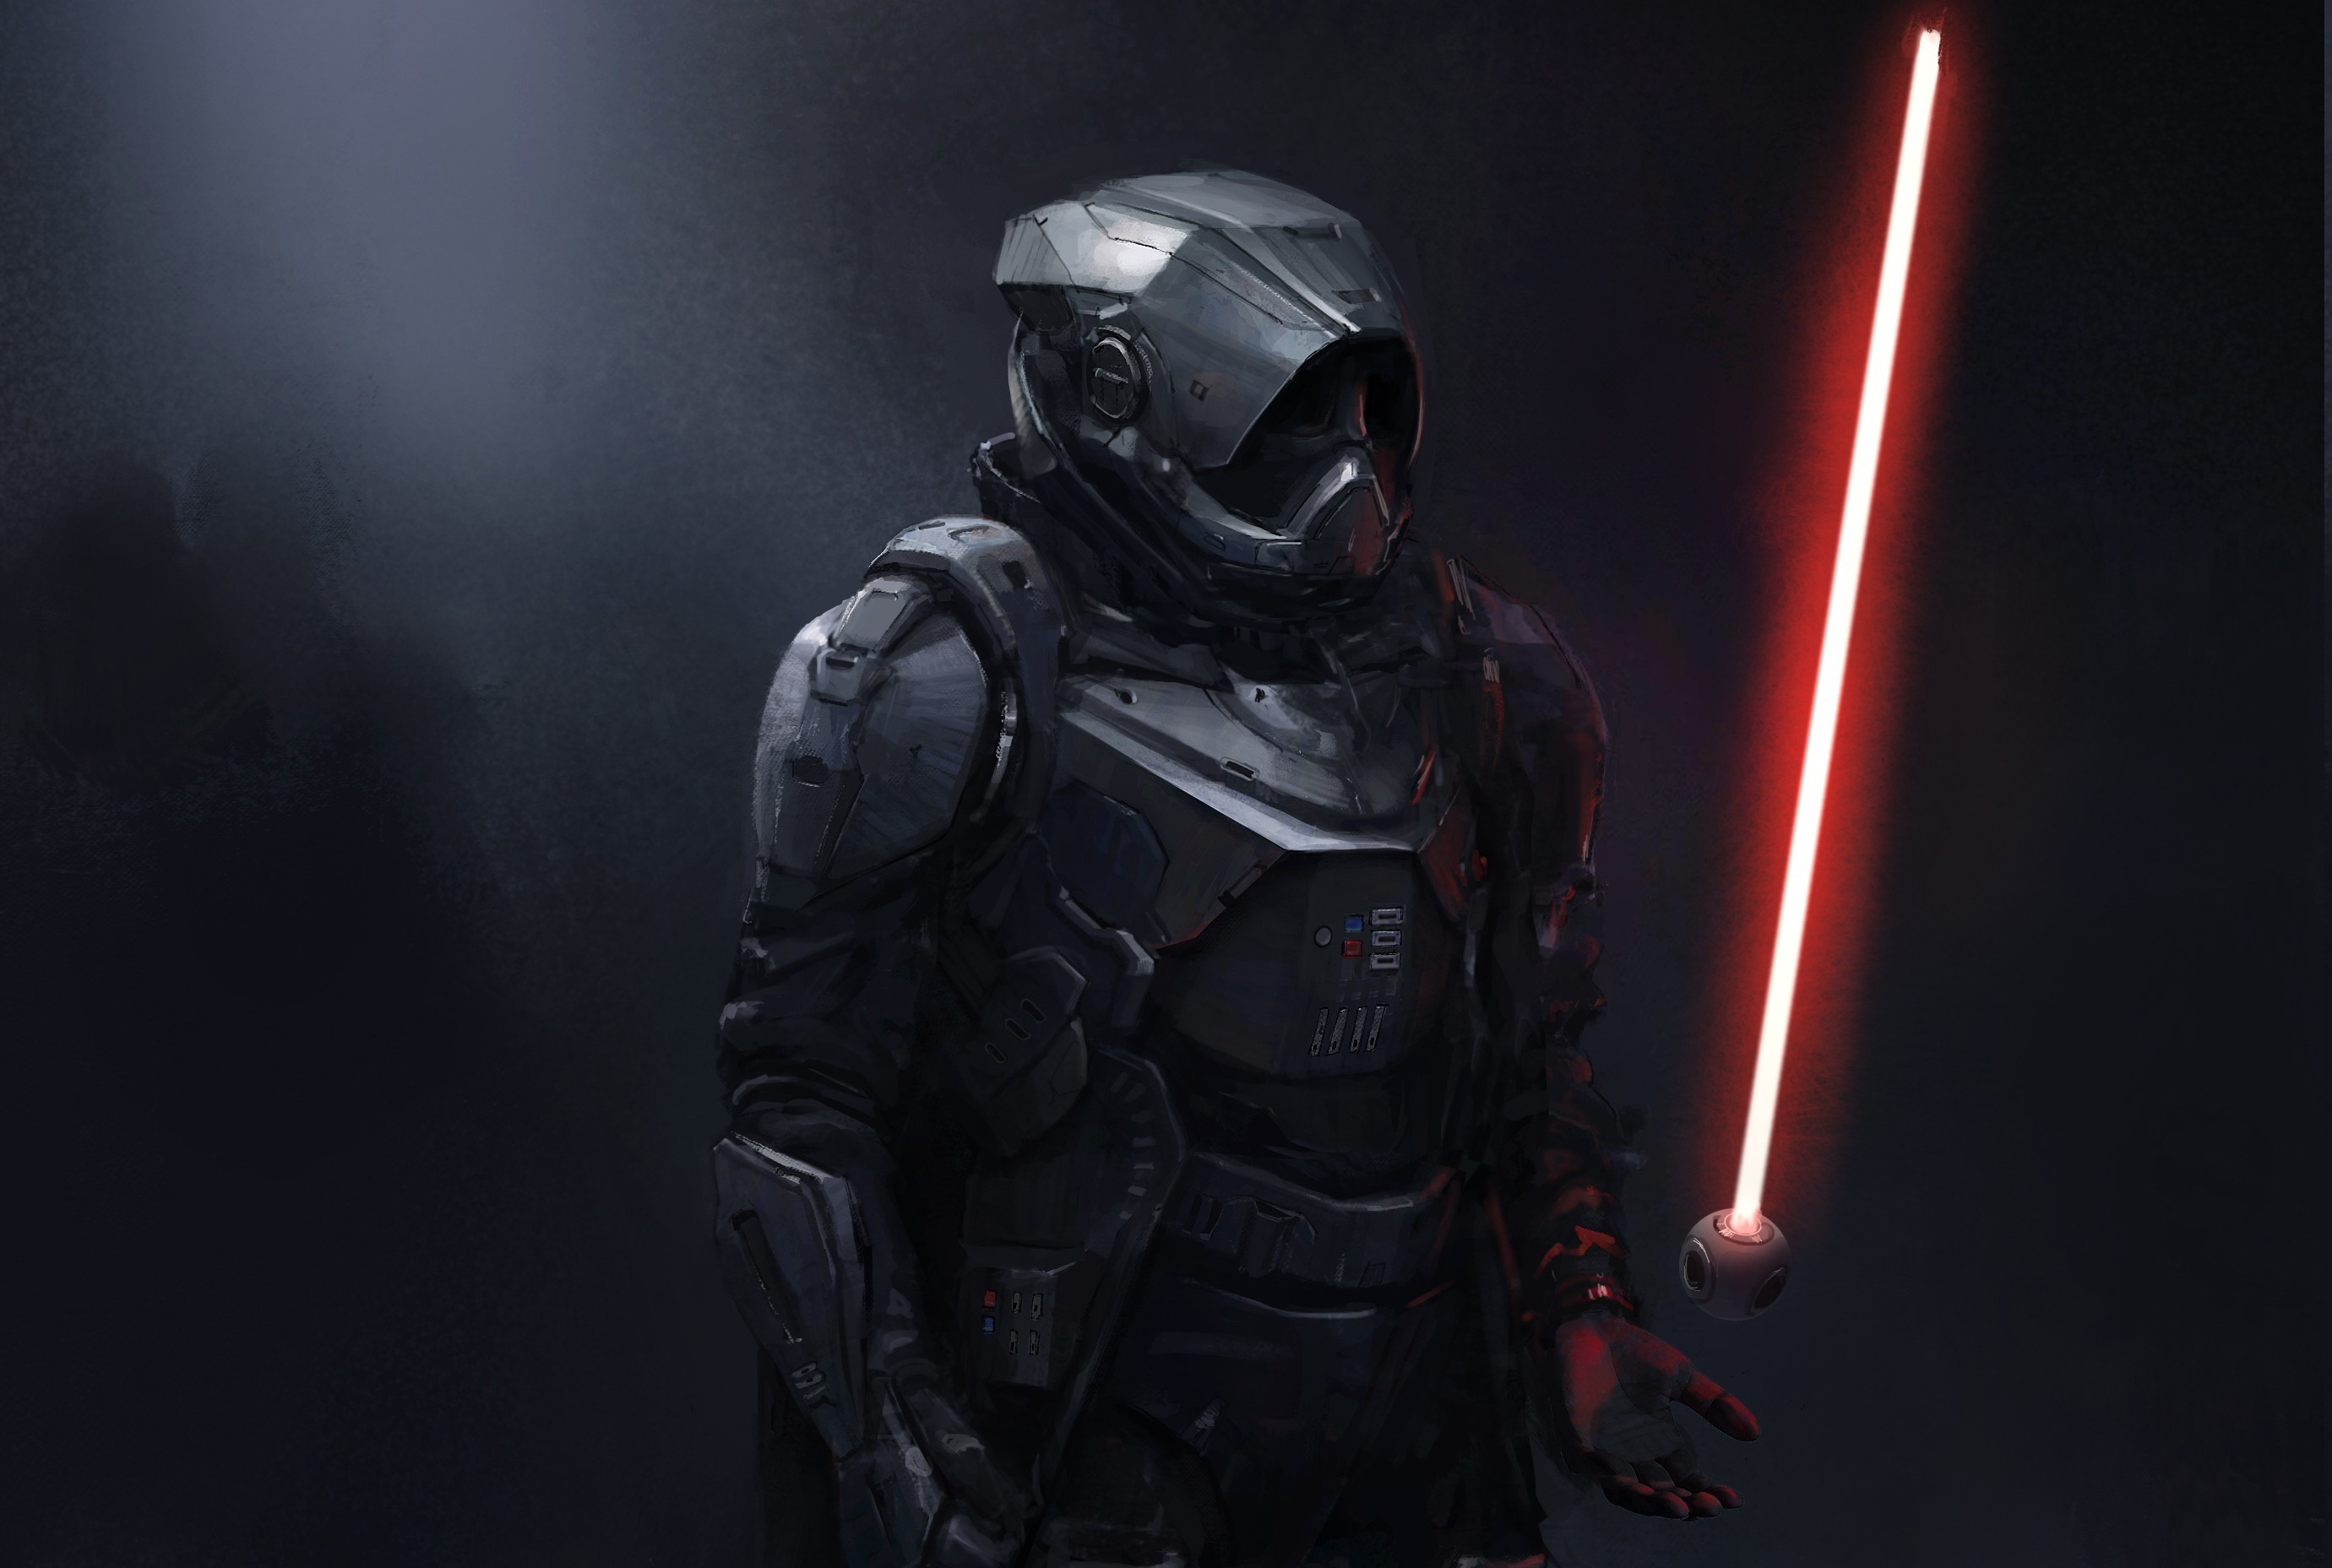 2761x1857 Star Wars Sith 1600×900 Wallpapers 1080p